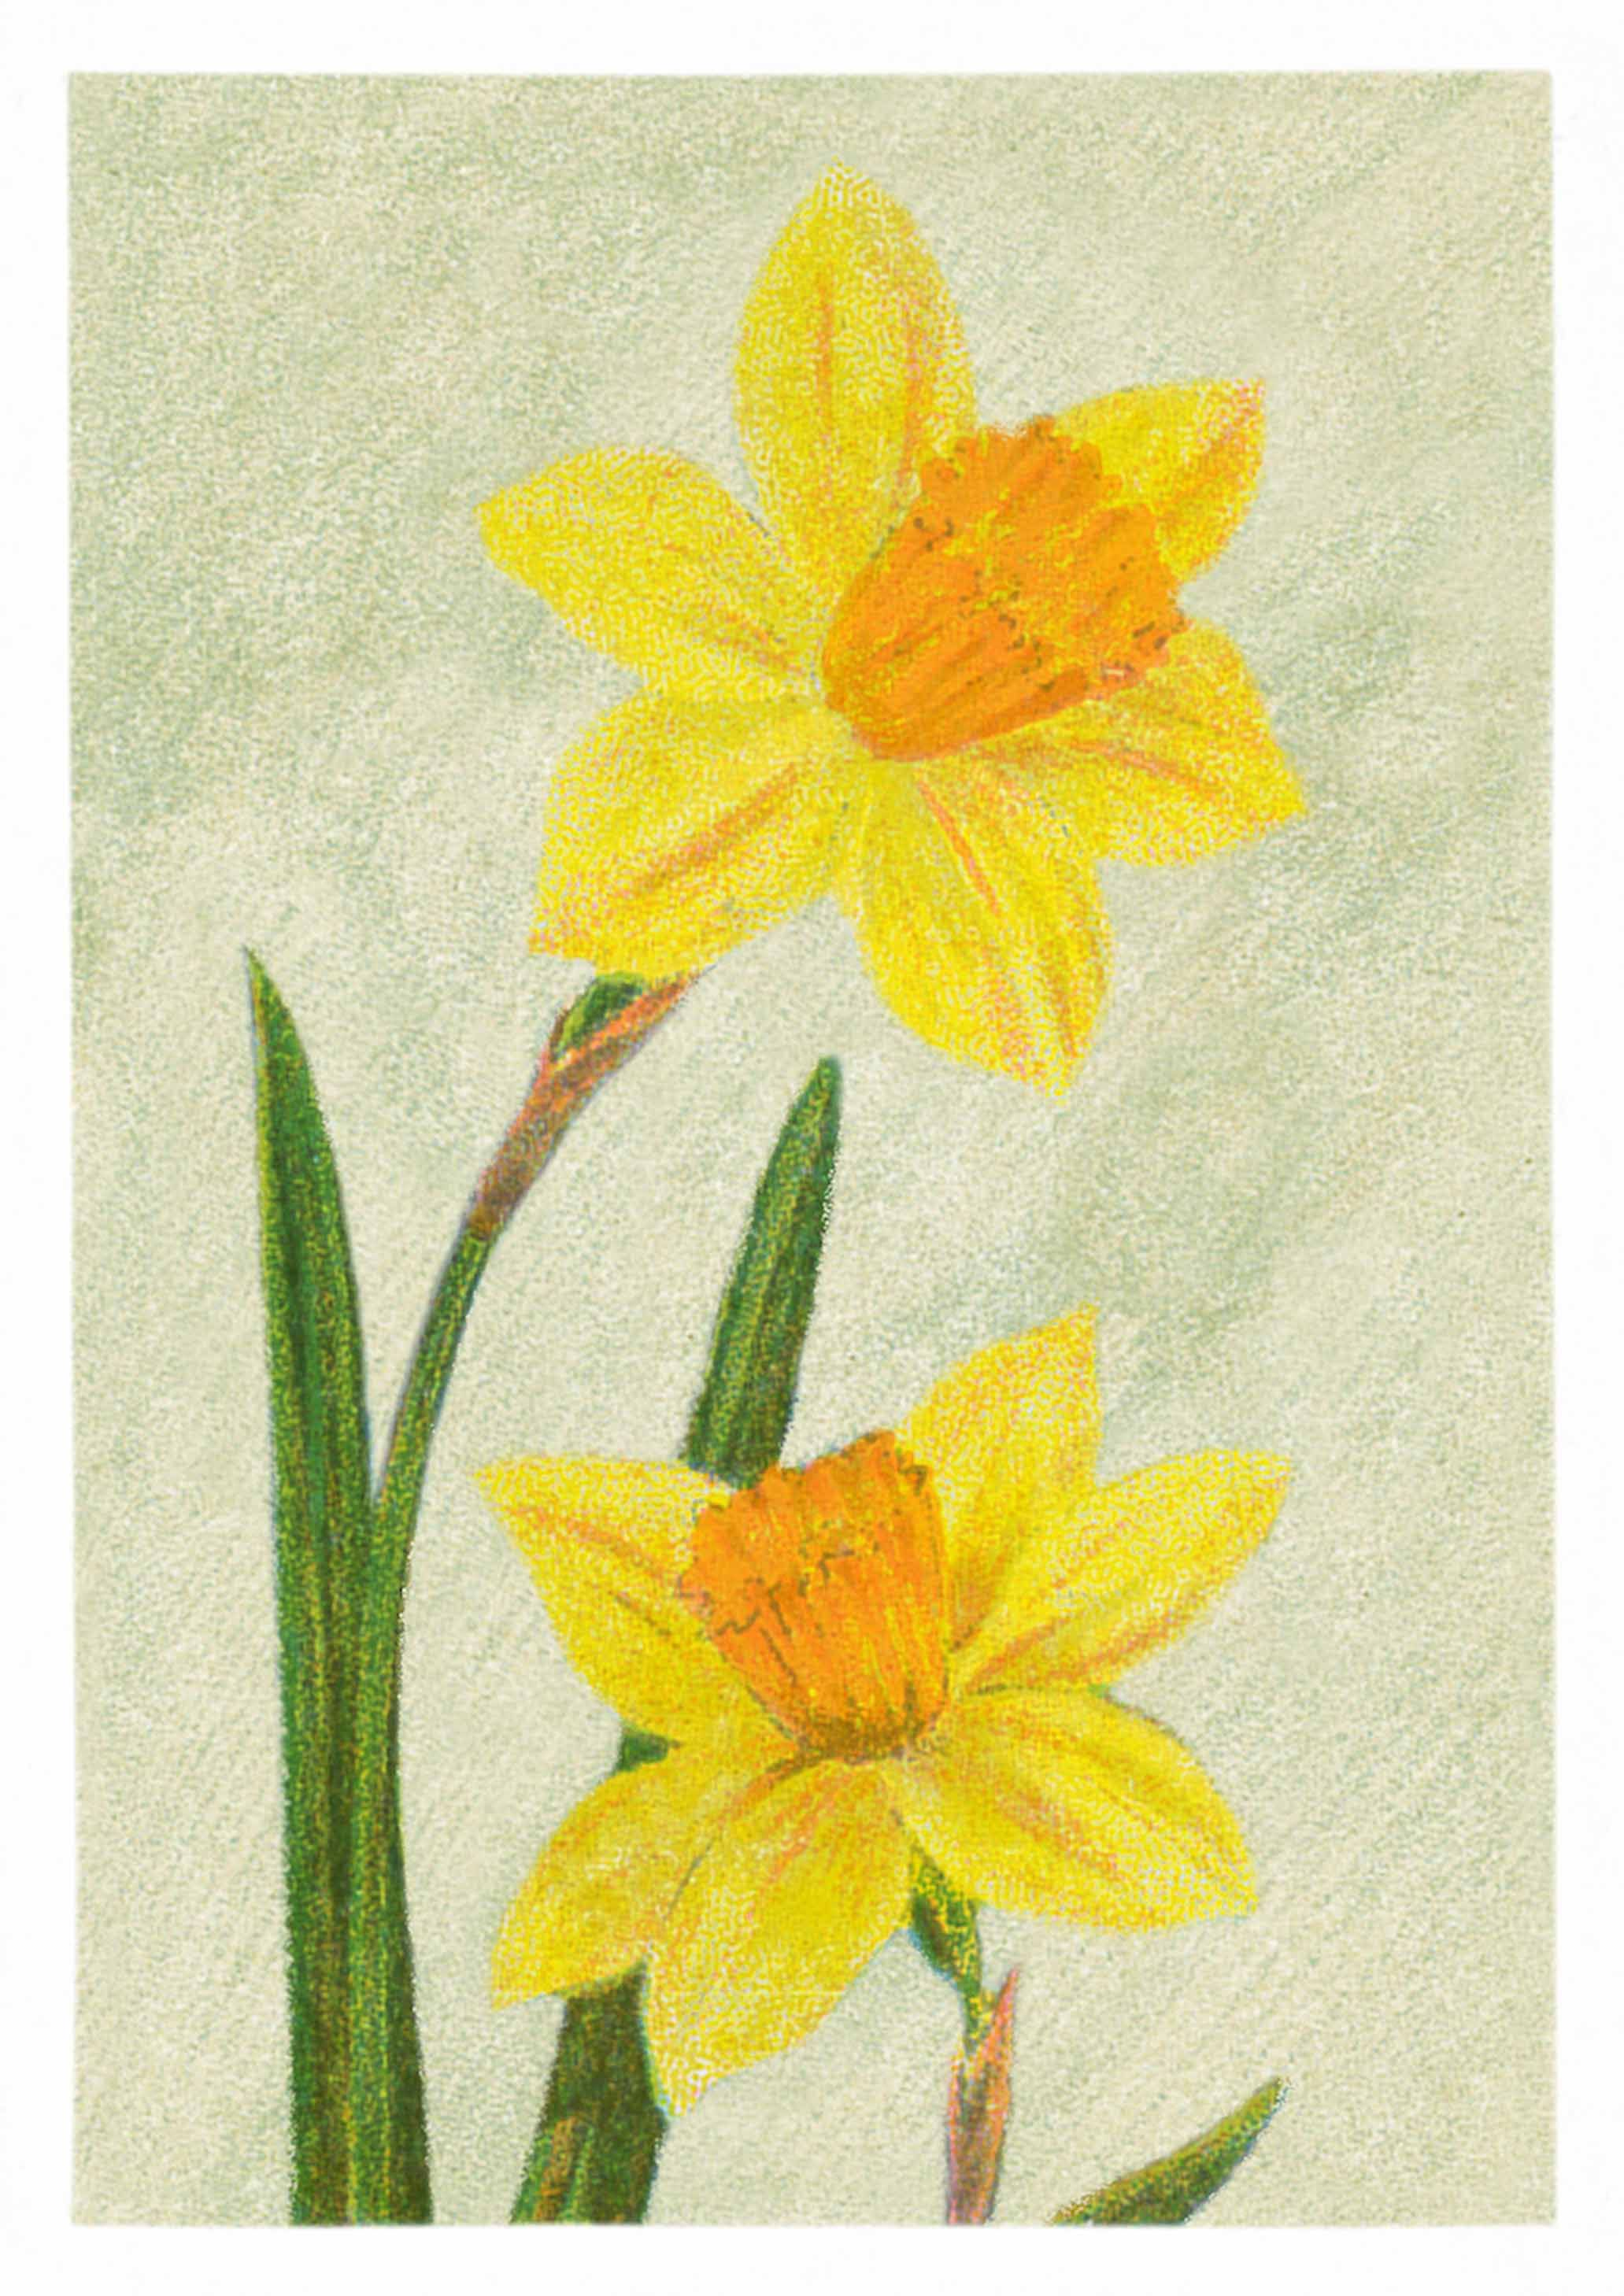 Yellow Daffodils Lovely Vintage Flower Drawing Printed On Canvas